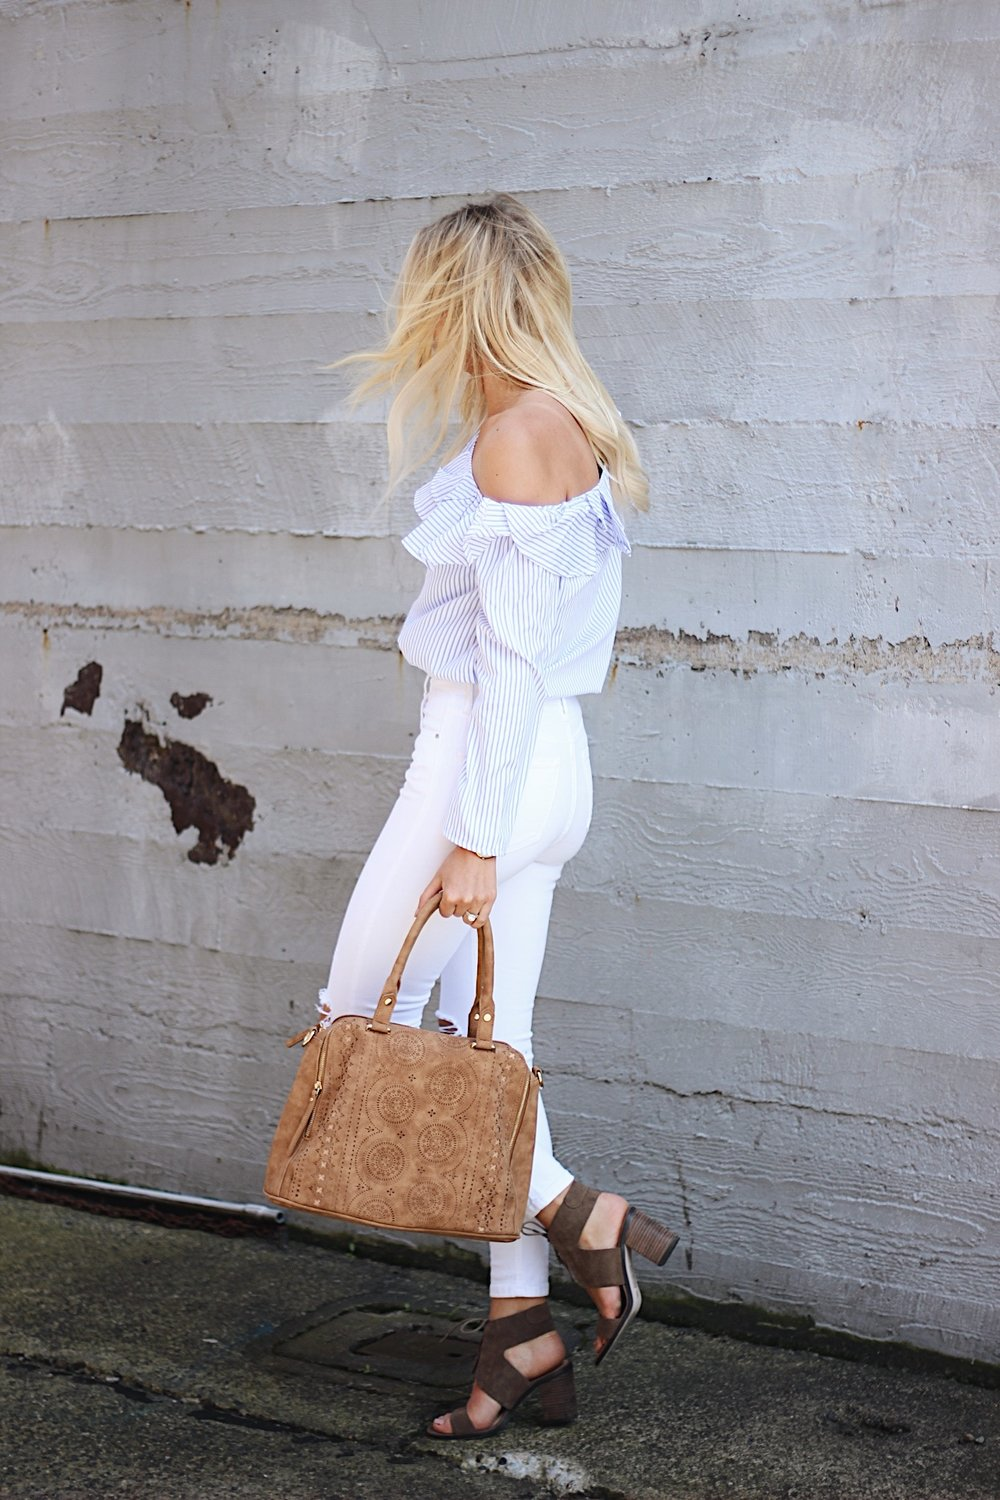 SheIn top, Free People Bag, Sole Society shoes | xxkarlierae.com